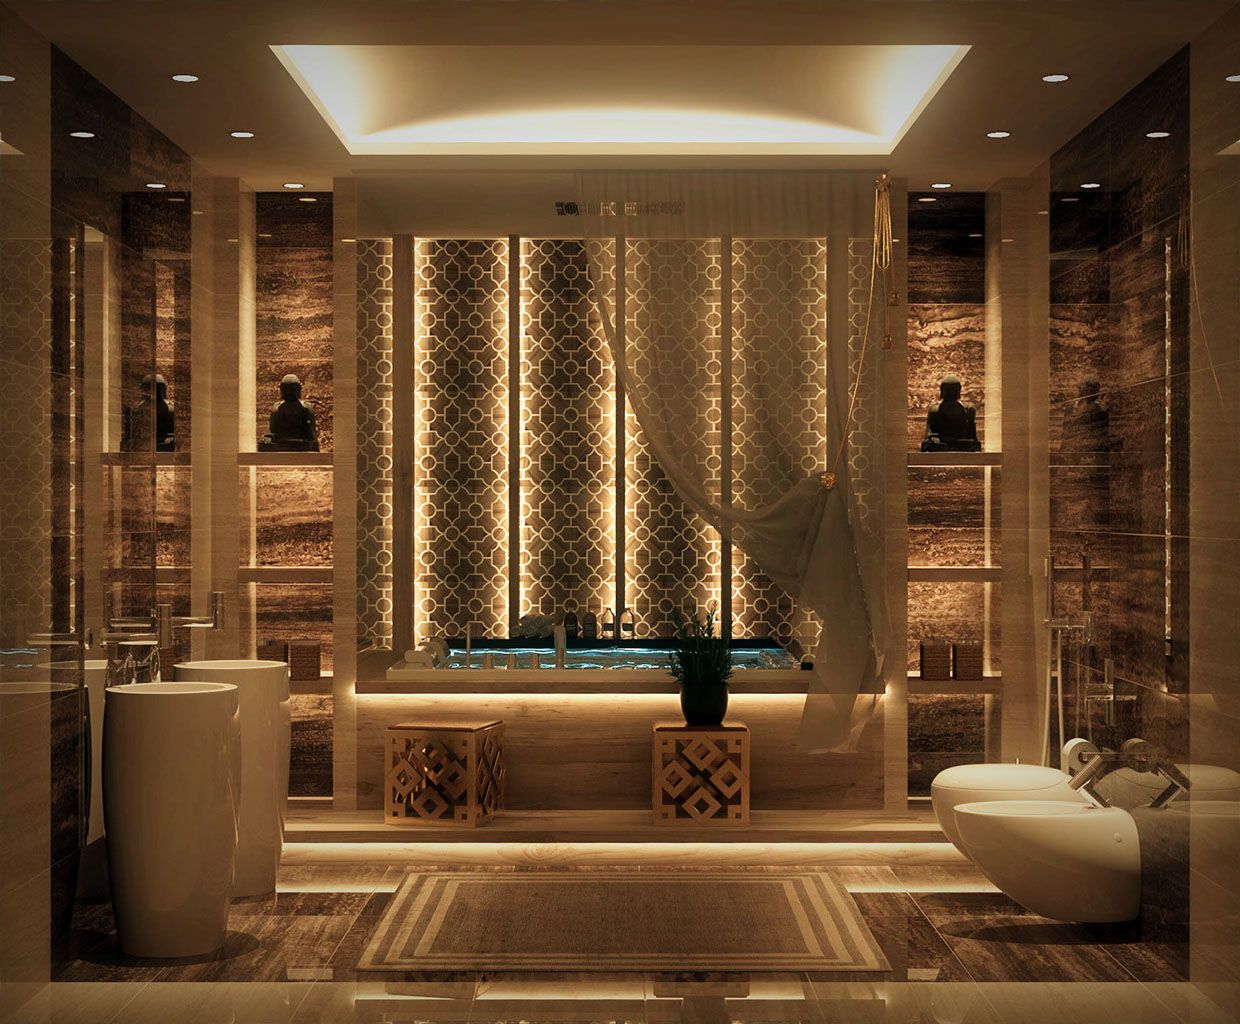 Pictures Of Luxury Bathrooms Gorgeous Luxurious Bathrooms With Stunning Design Details Inspiration Design